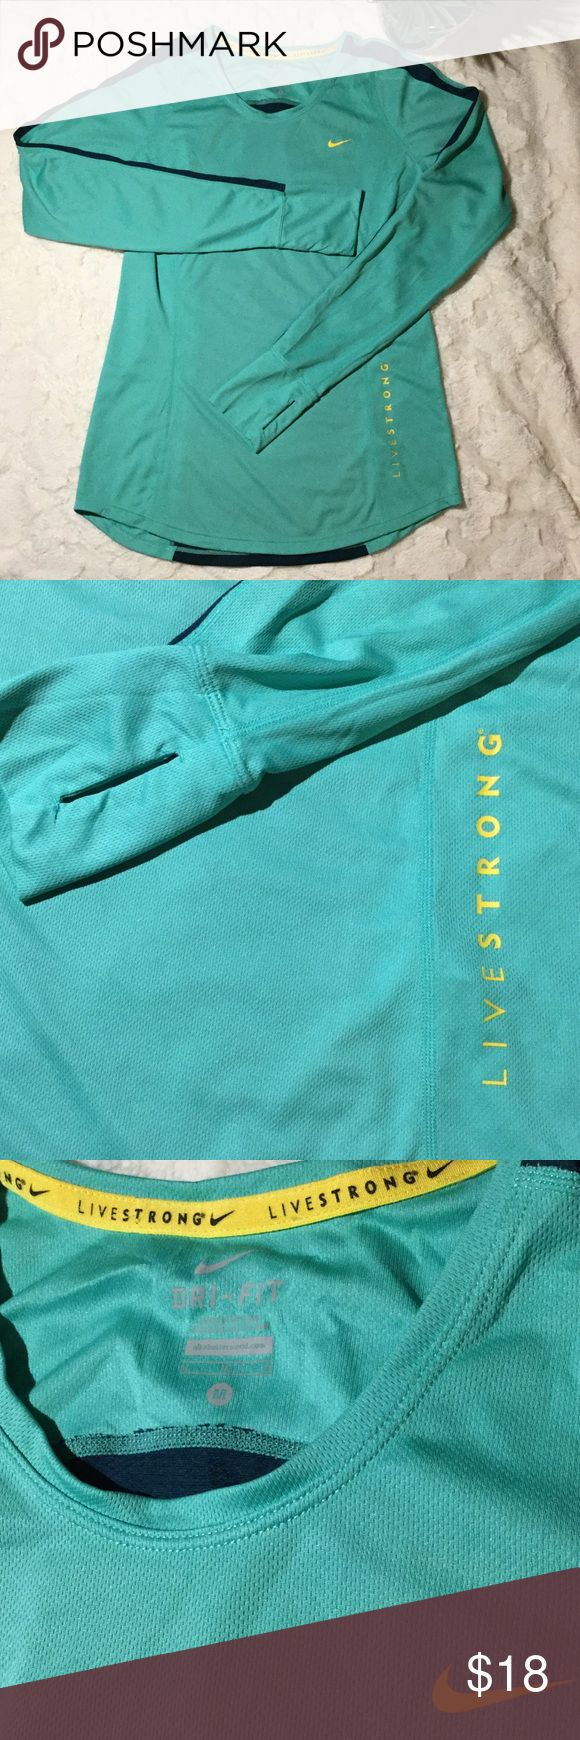 EUC Nike Livestrong Dri-Fit Long Sleeve Mesh Top,M Excellent used condition. No rips, tears or stains. Nike Livestrong Women M Dri-fit Long Sleeve Seafoam Green/Yellow Mesh top.  Contrasting navy blue down sleeves & on the back. Thumb holes. 18' pit to pit. 100% polyester. Nike Tops Tees - Long Sleeve